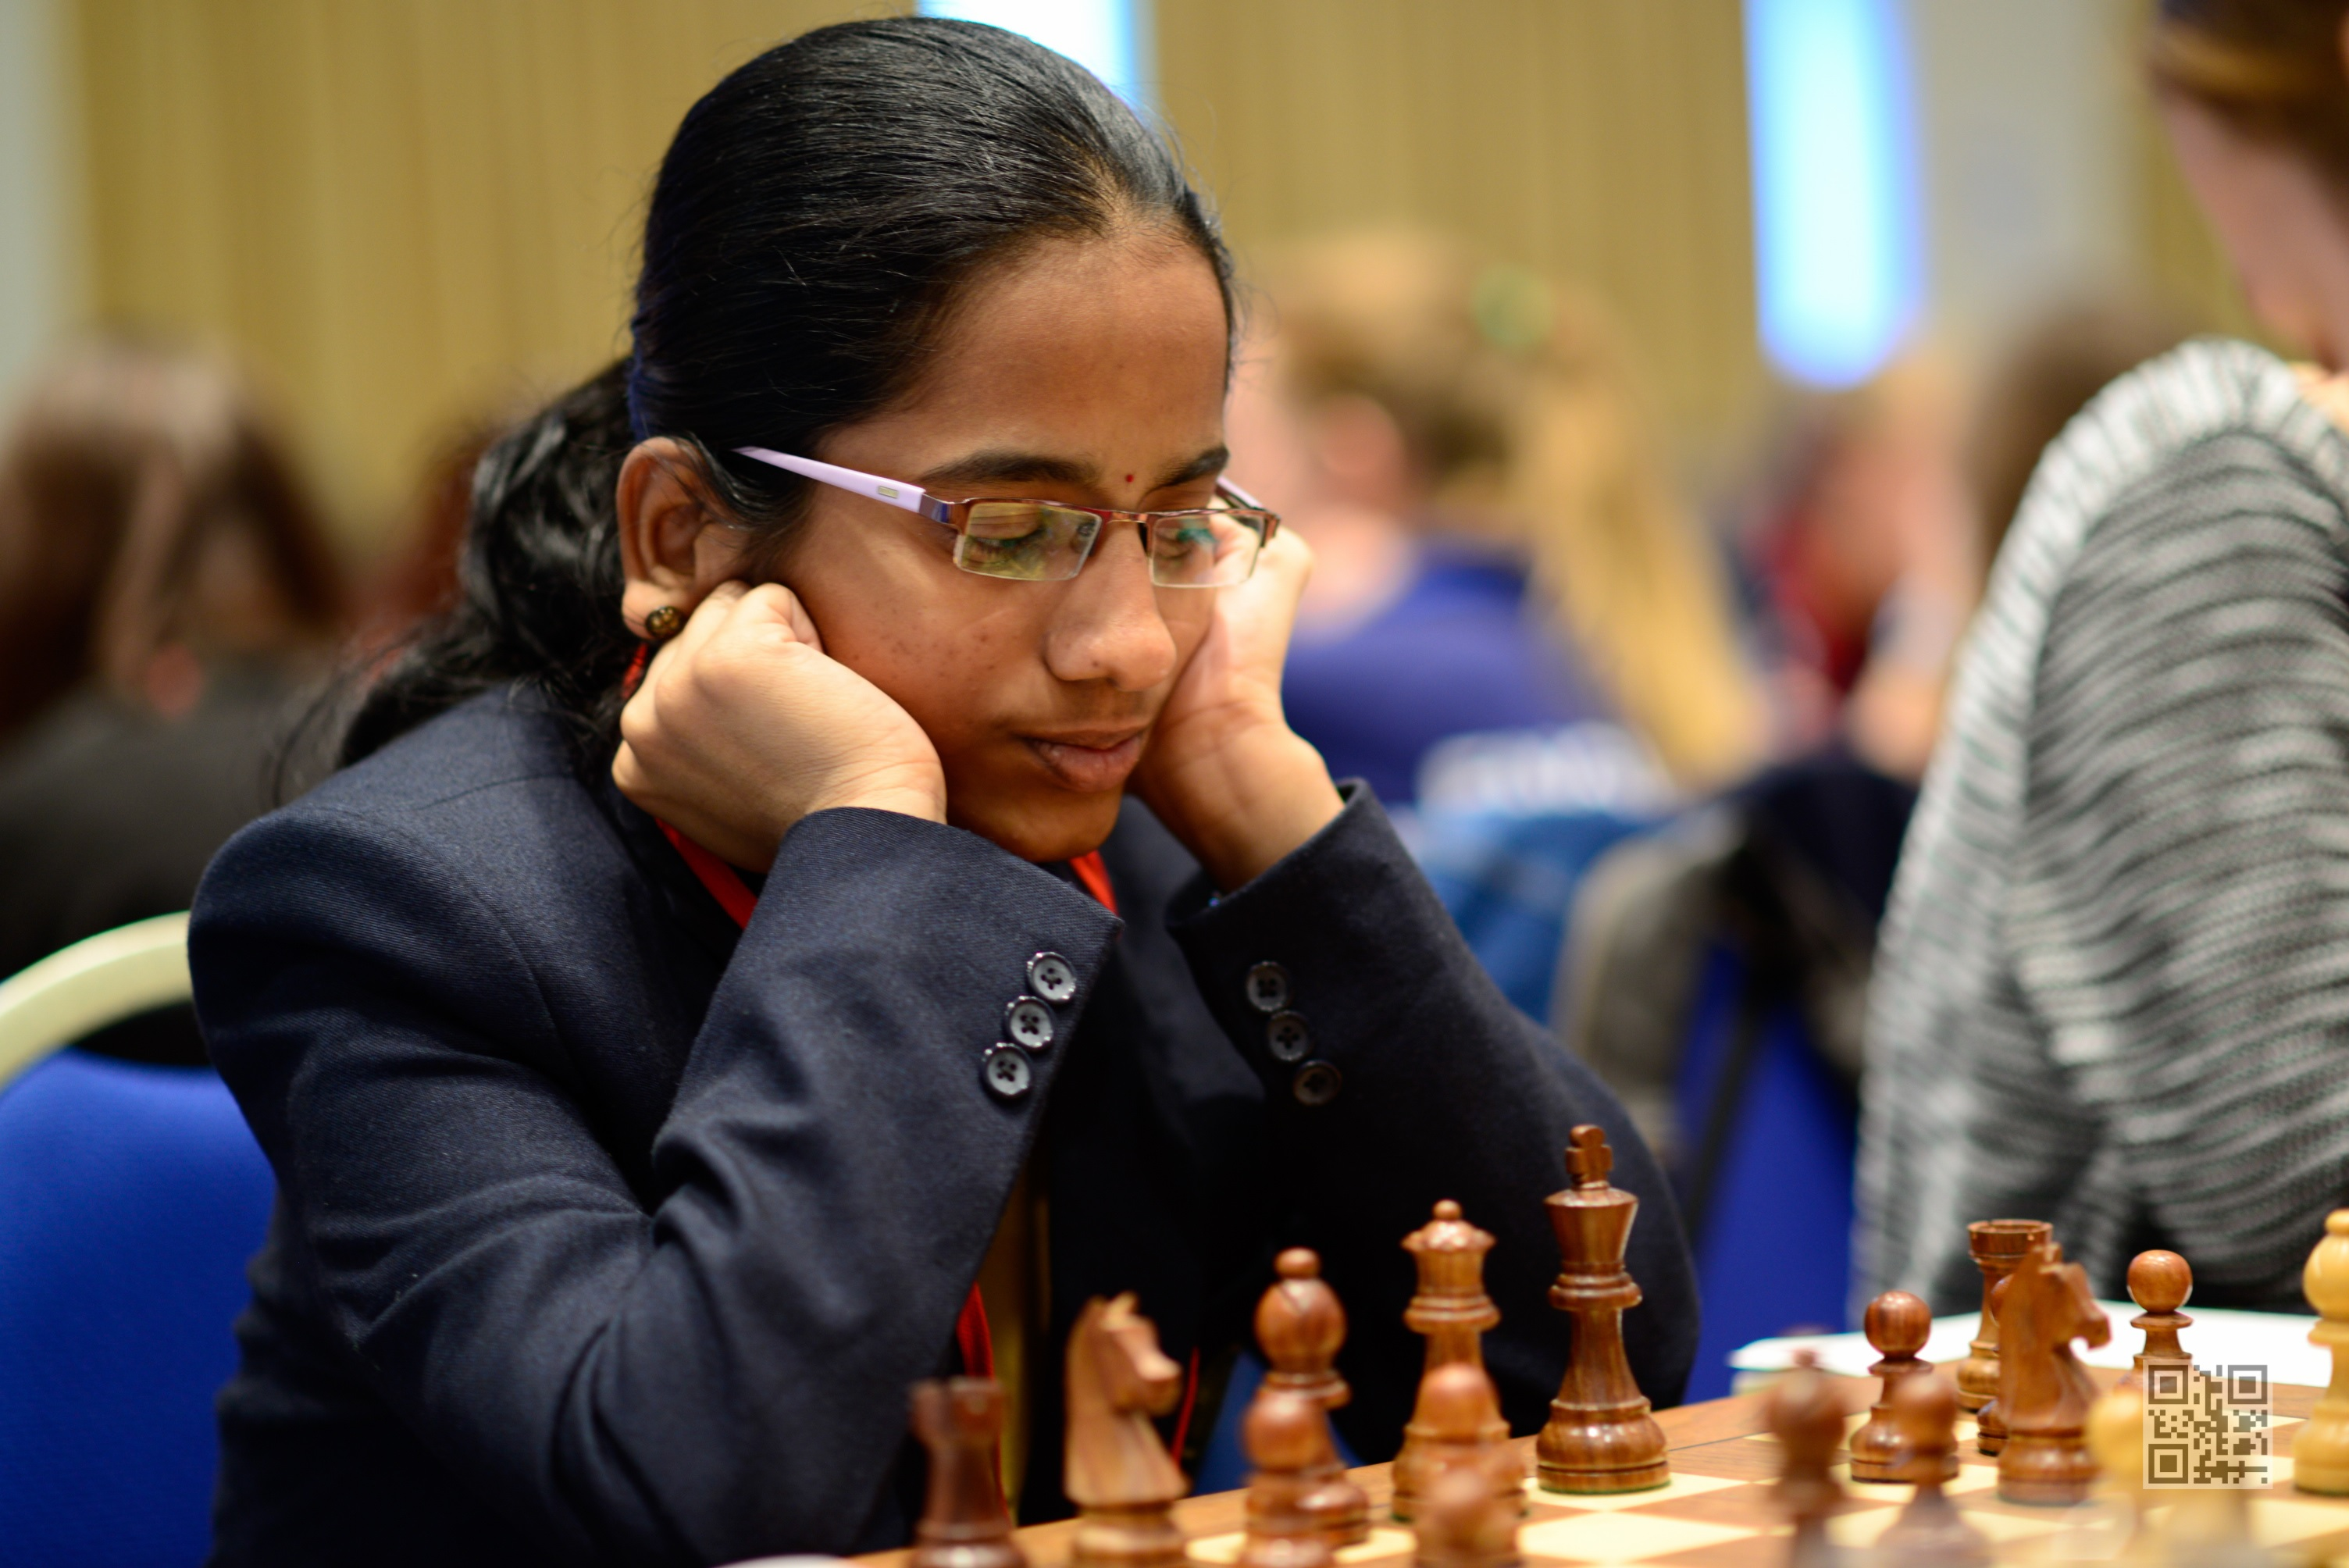 M. Mahalakshmi is in lead in the girls' U18 section with 6.5 points.